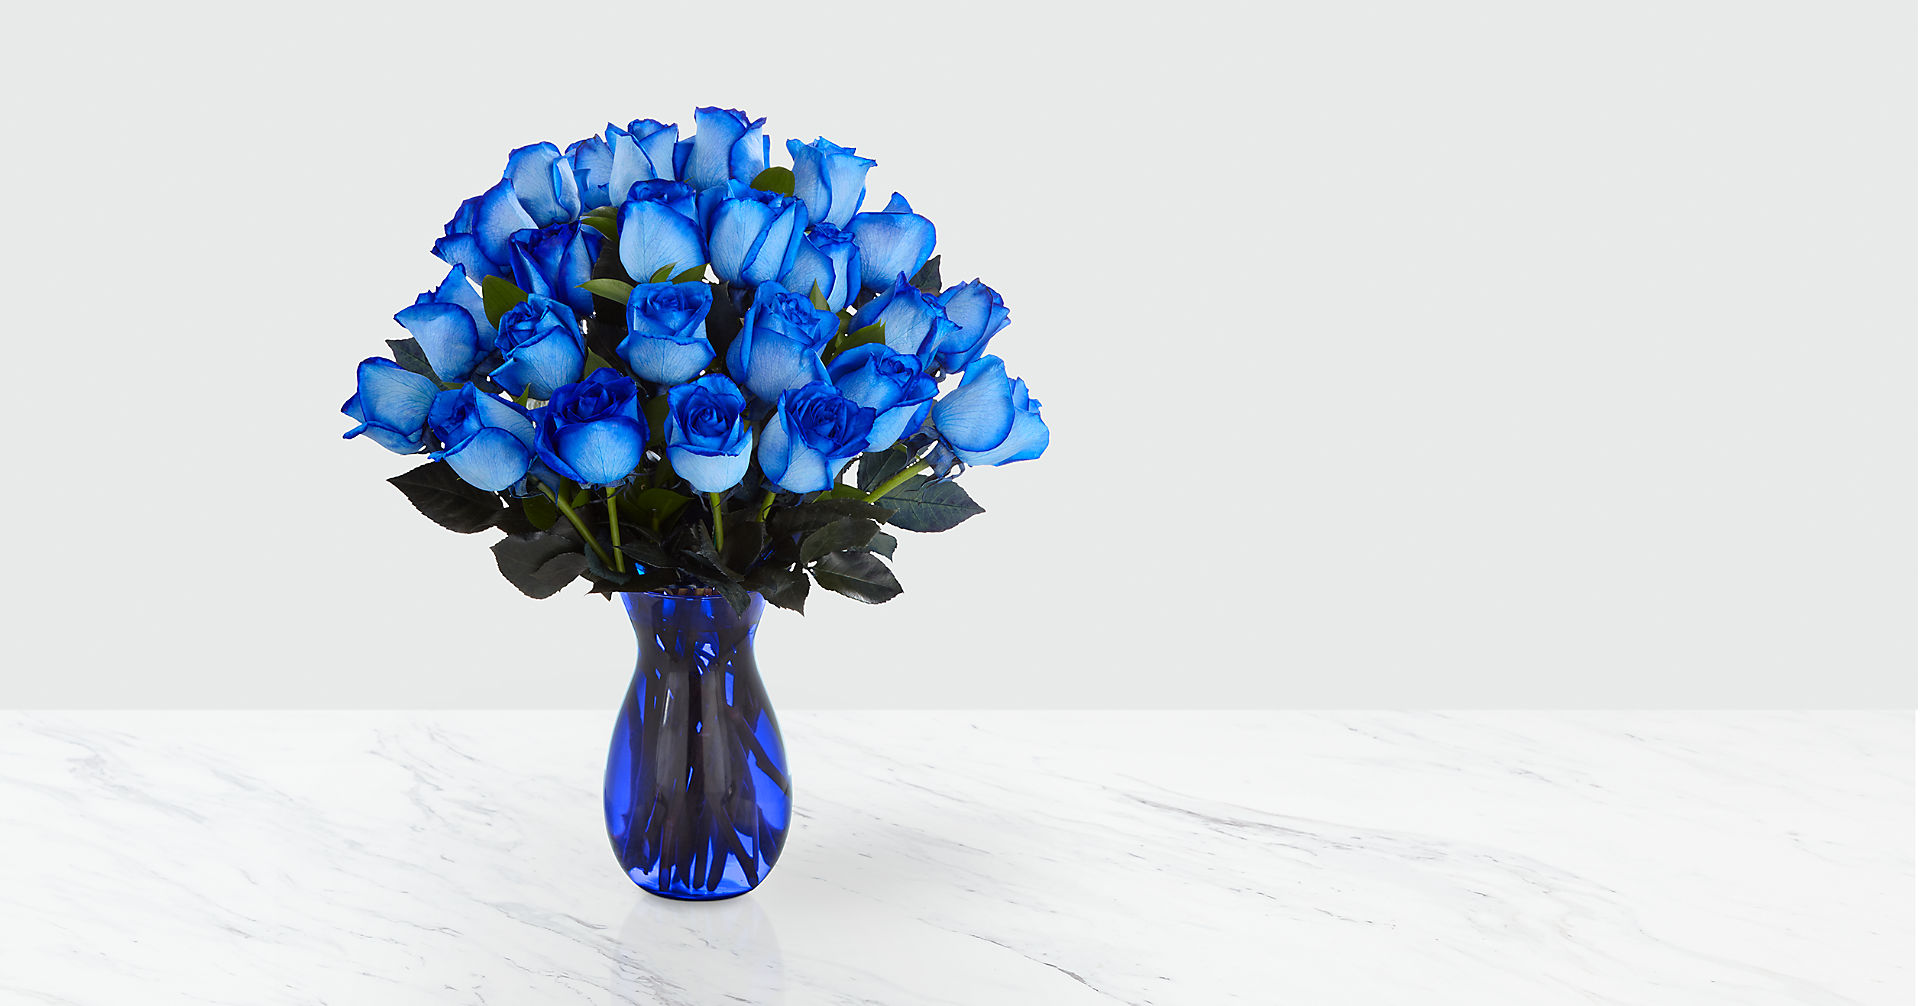 Extreme Blue Hues Fiesta Rose Bouquet - 24 Stems - VASE INCLUDED - Image 1 Of 2